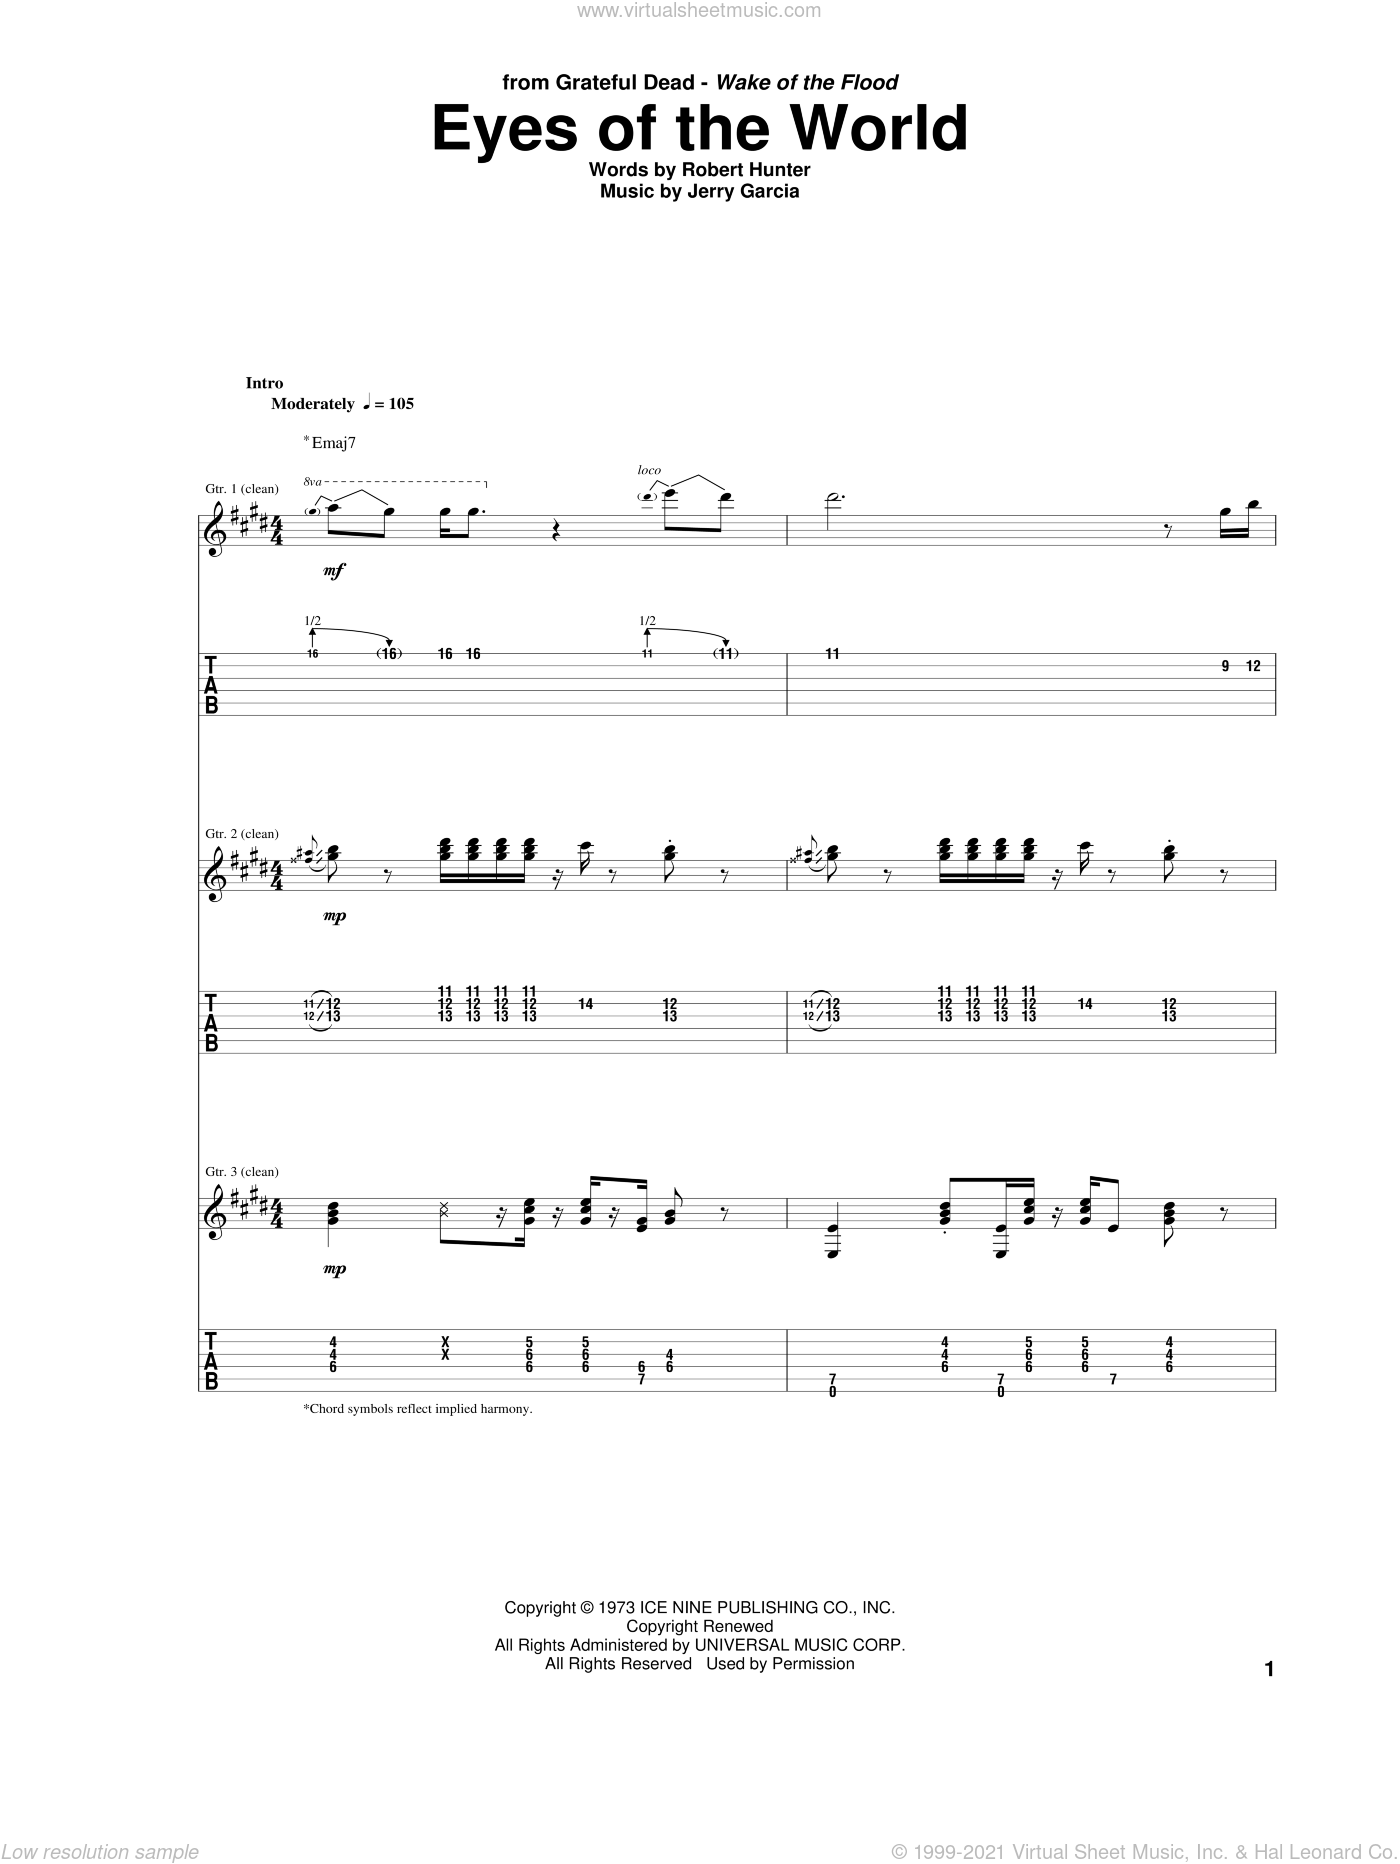 Eyes Of The World sheet music for guitar (tablature) by Grateful Dead, Jerry Garcia and Robert Hunter, intermediate